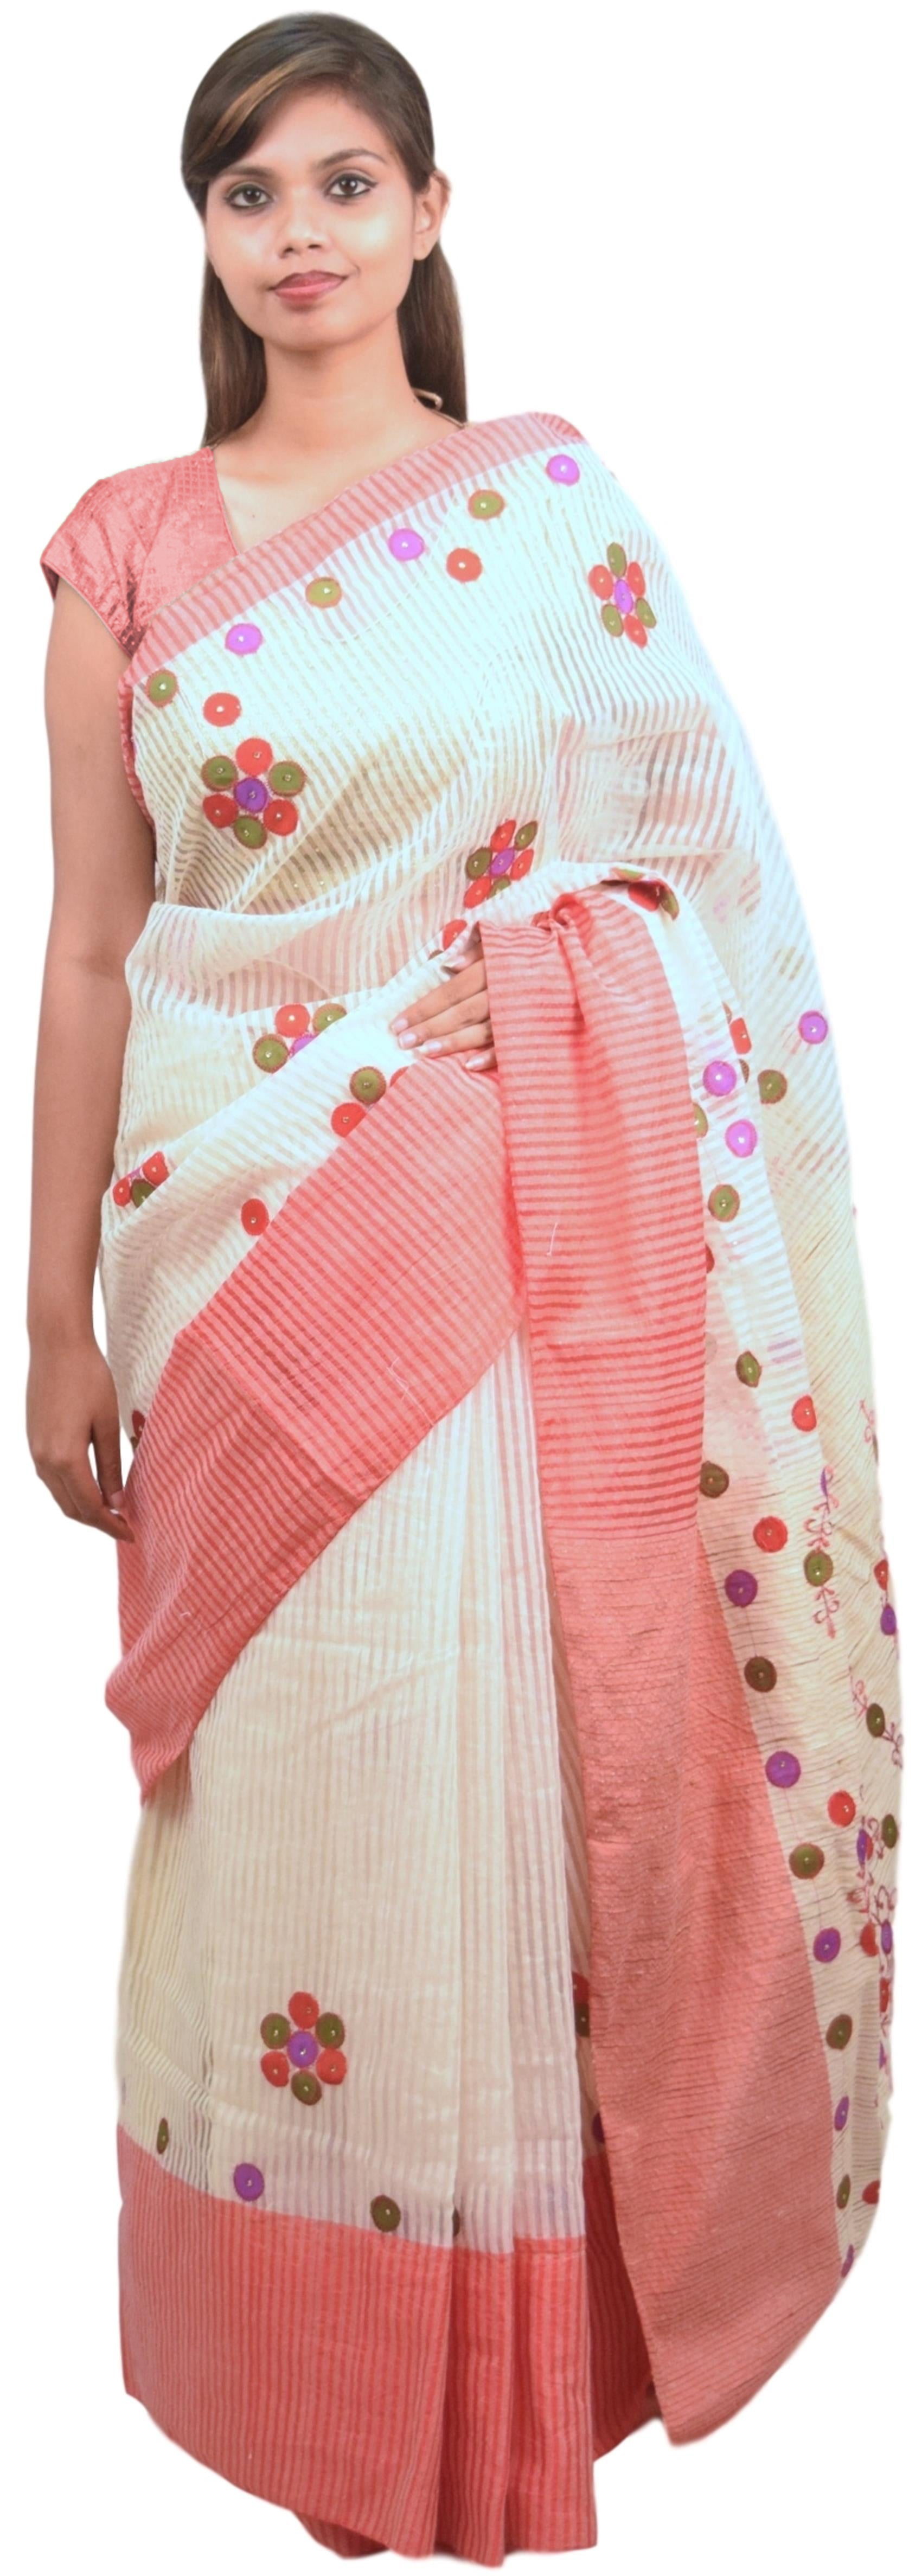 Cream & Pink Designer PartyWear Cotton Thread Work Boutique Style Saree Sari E043